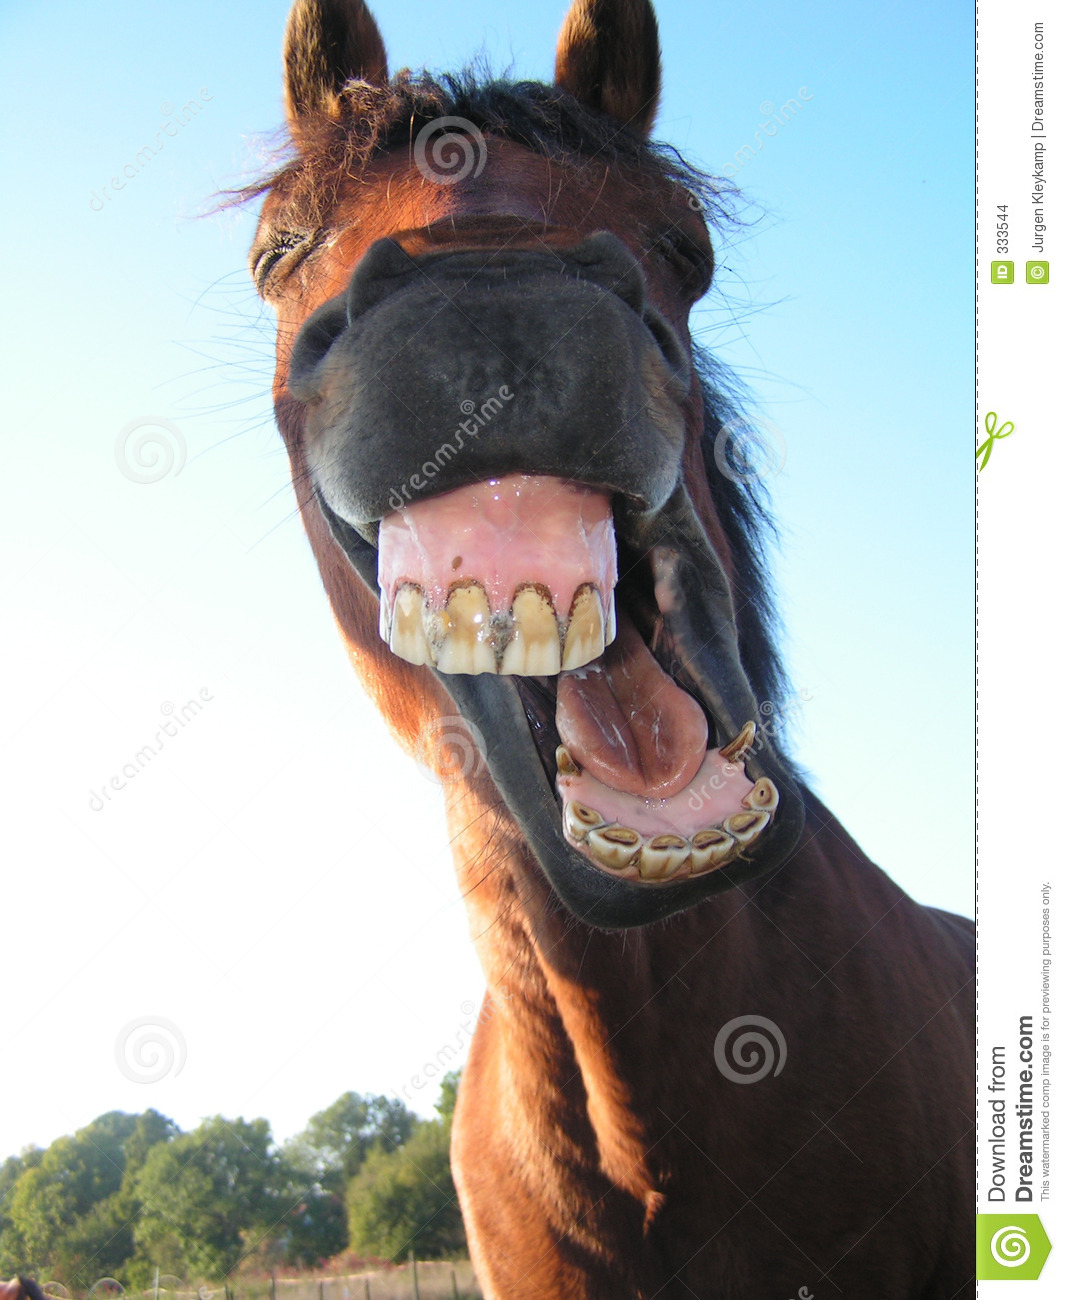 Strange facial expression of a horse